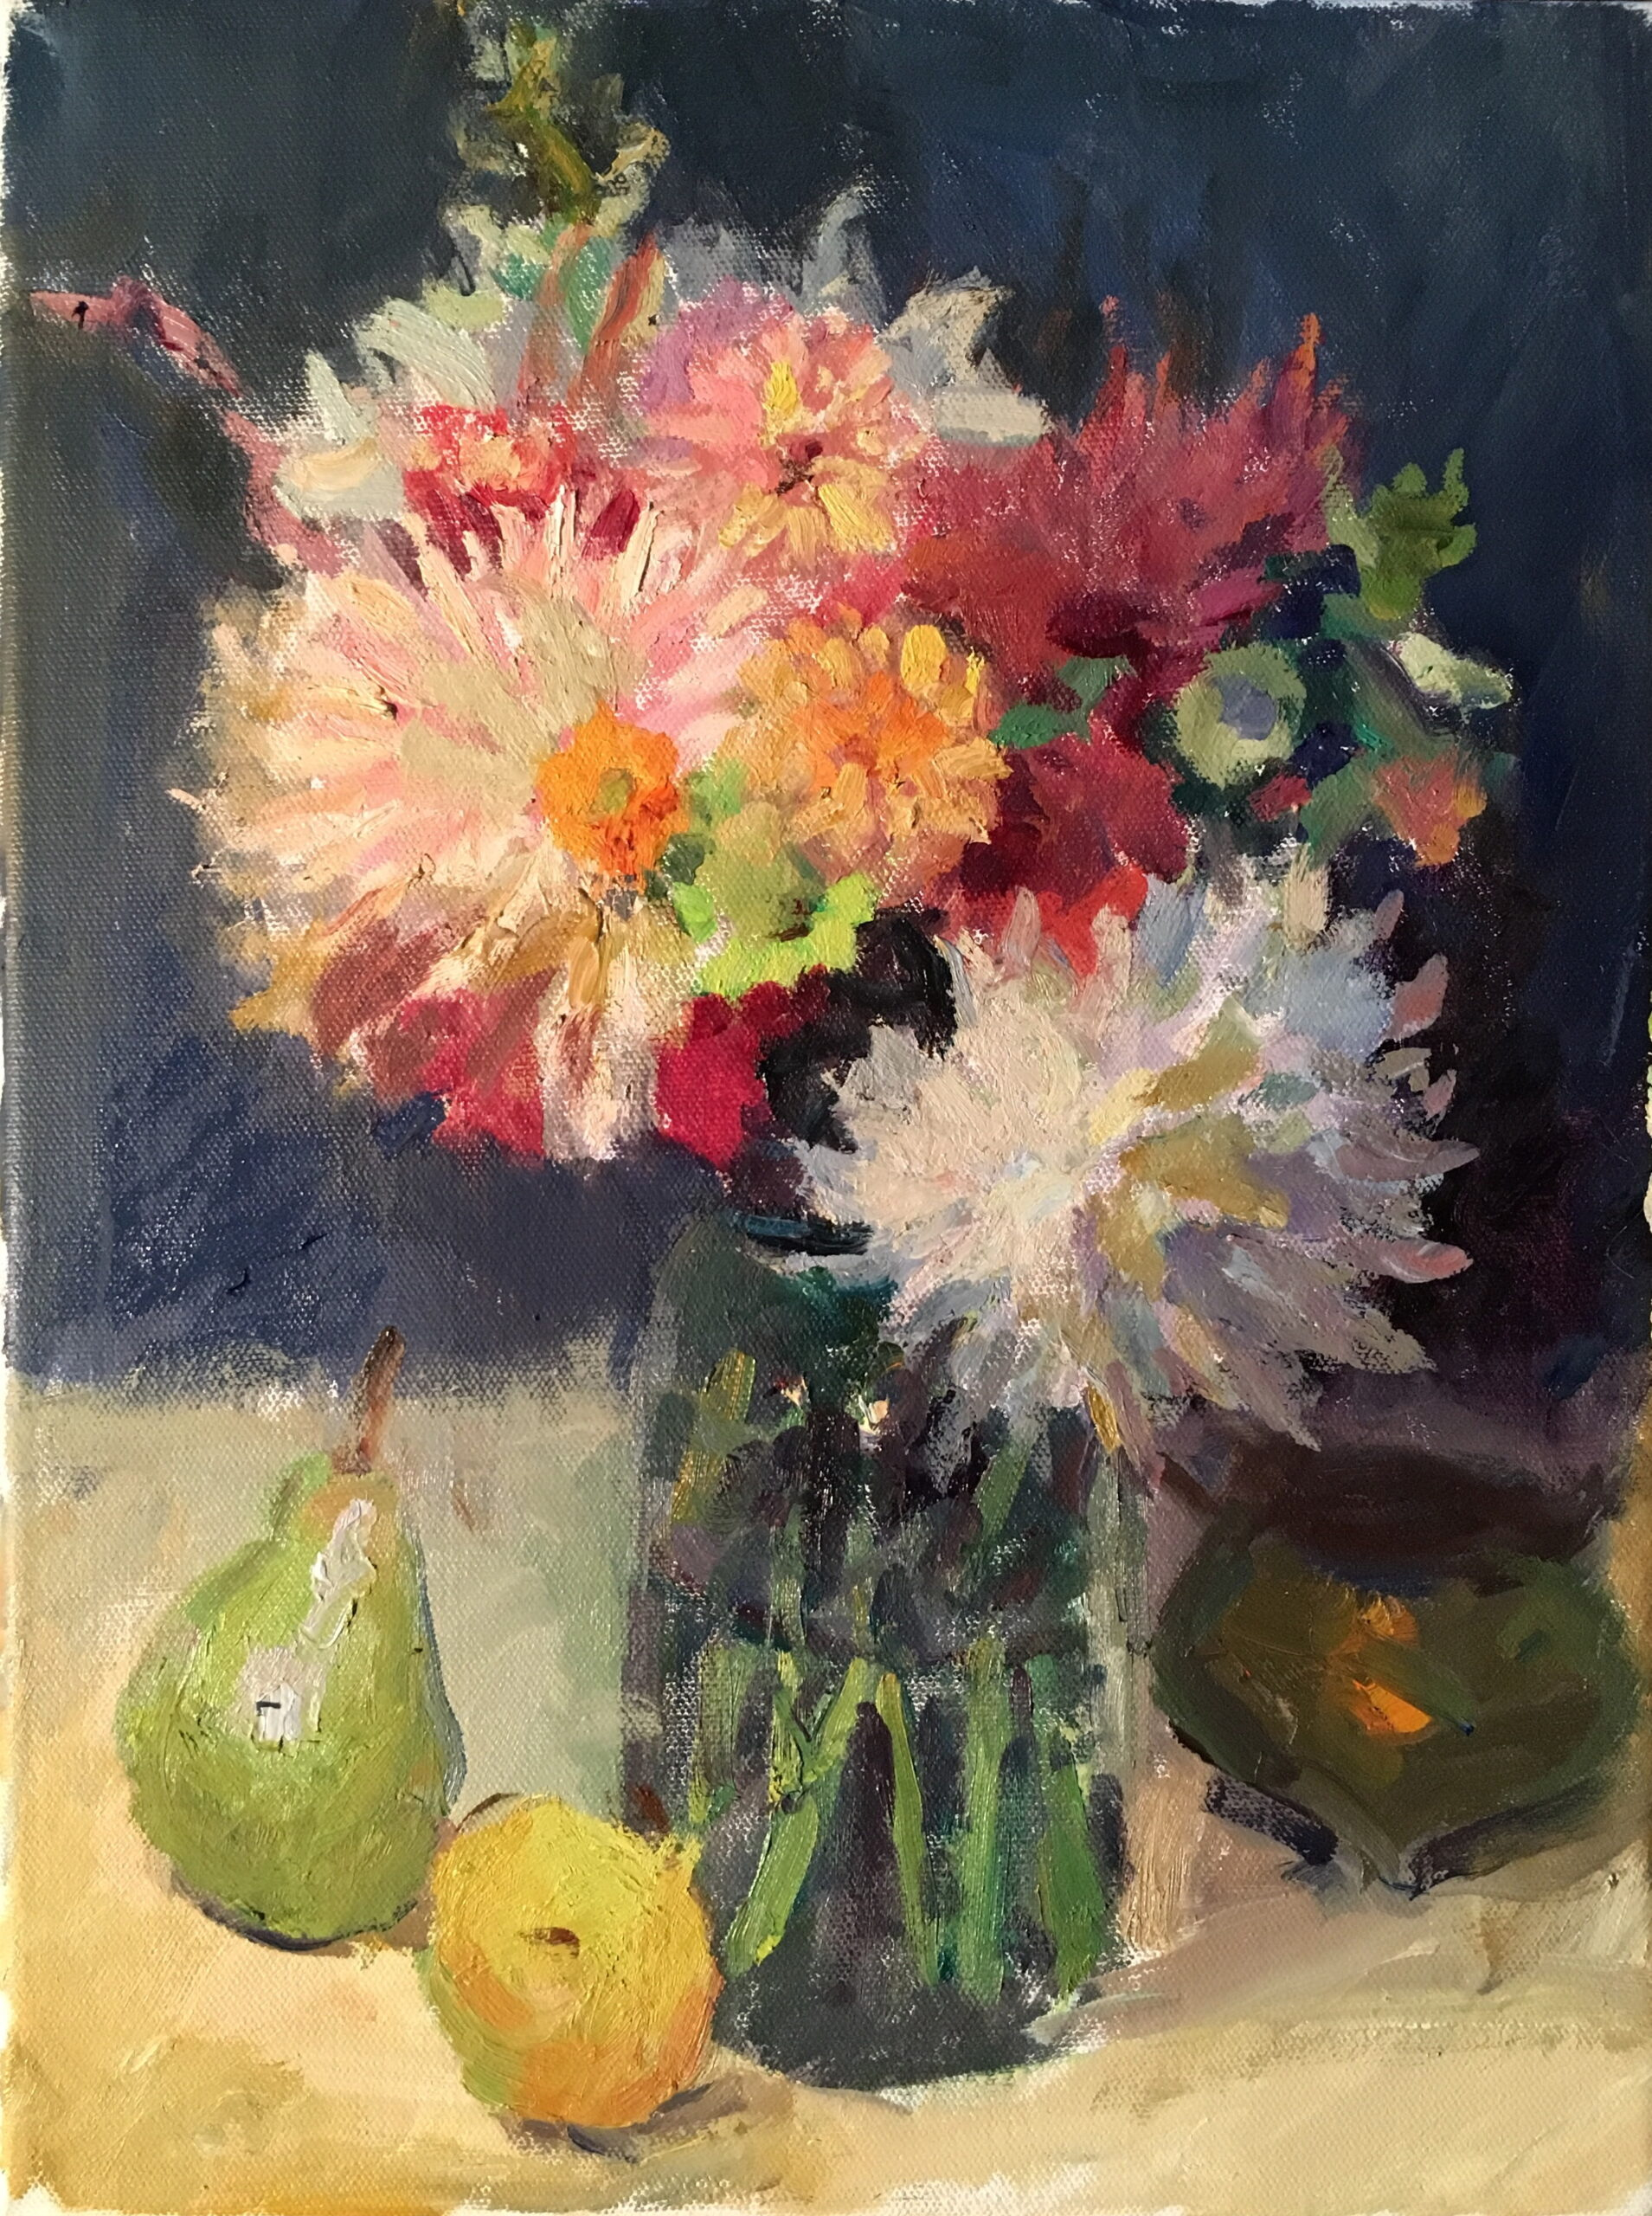 Dahlias and Pears, Oil on Canvas, 16 x 12 Inches, by Susan Grisell, $325